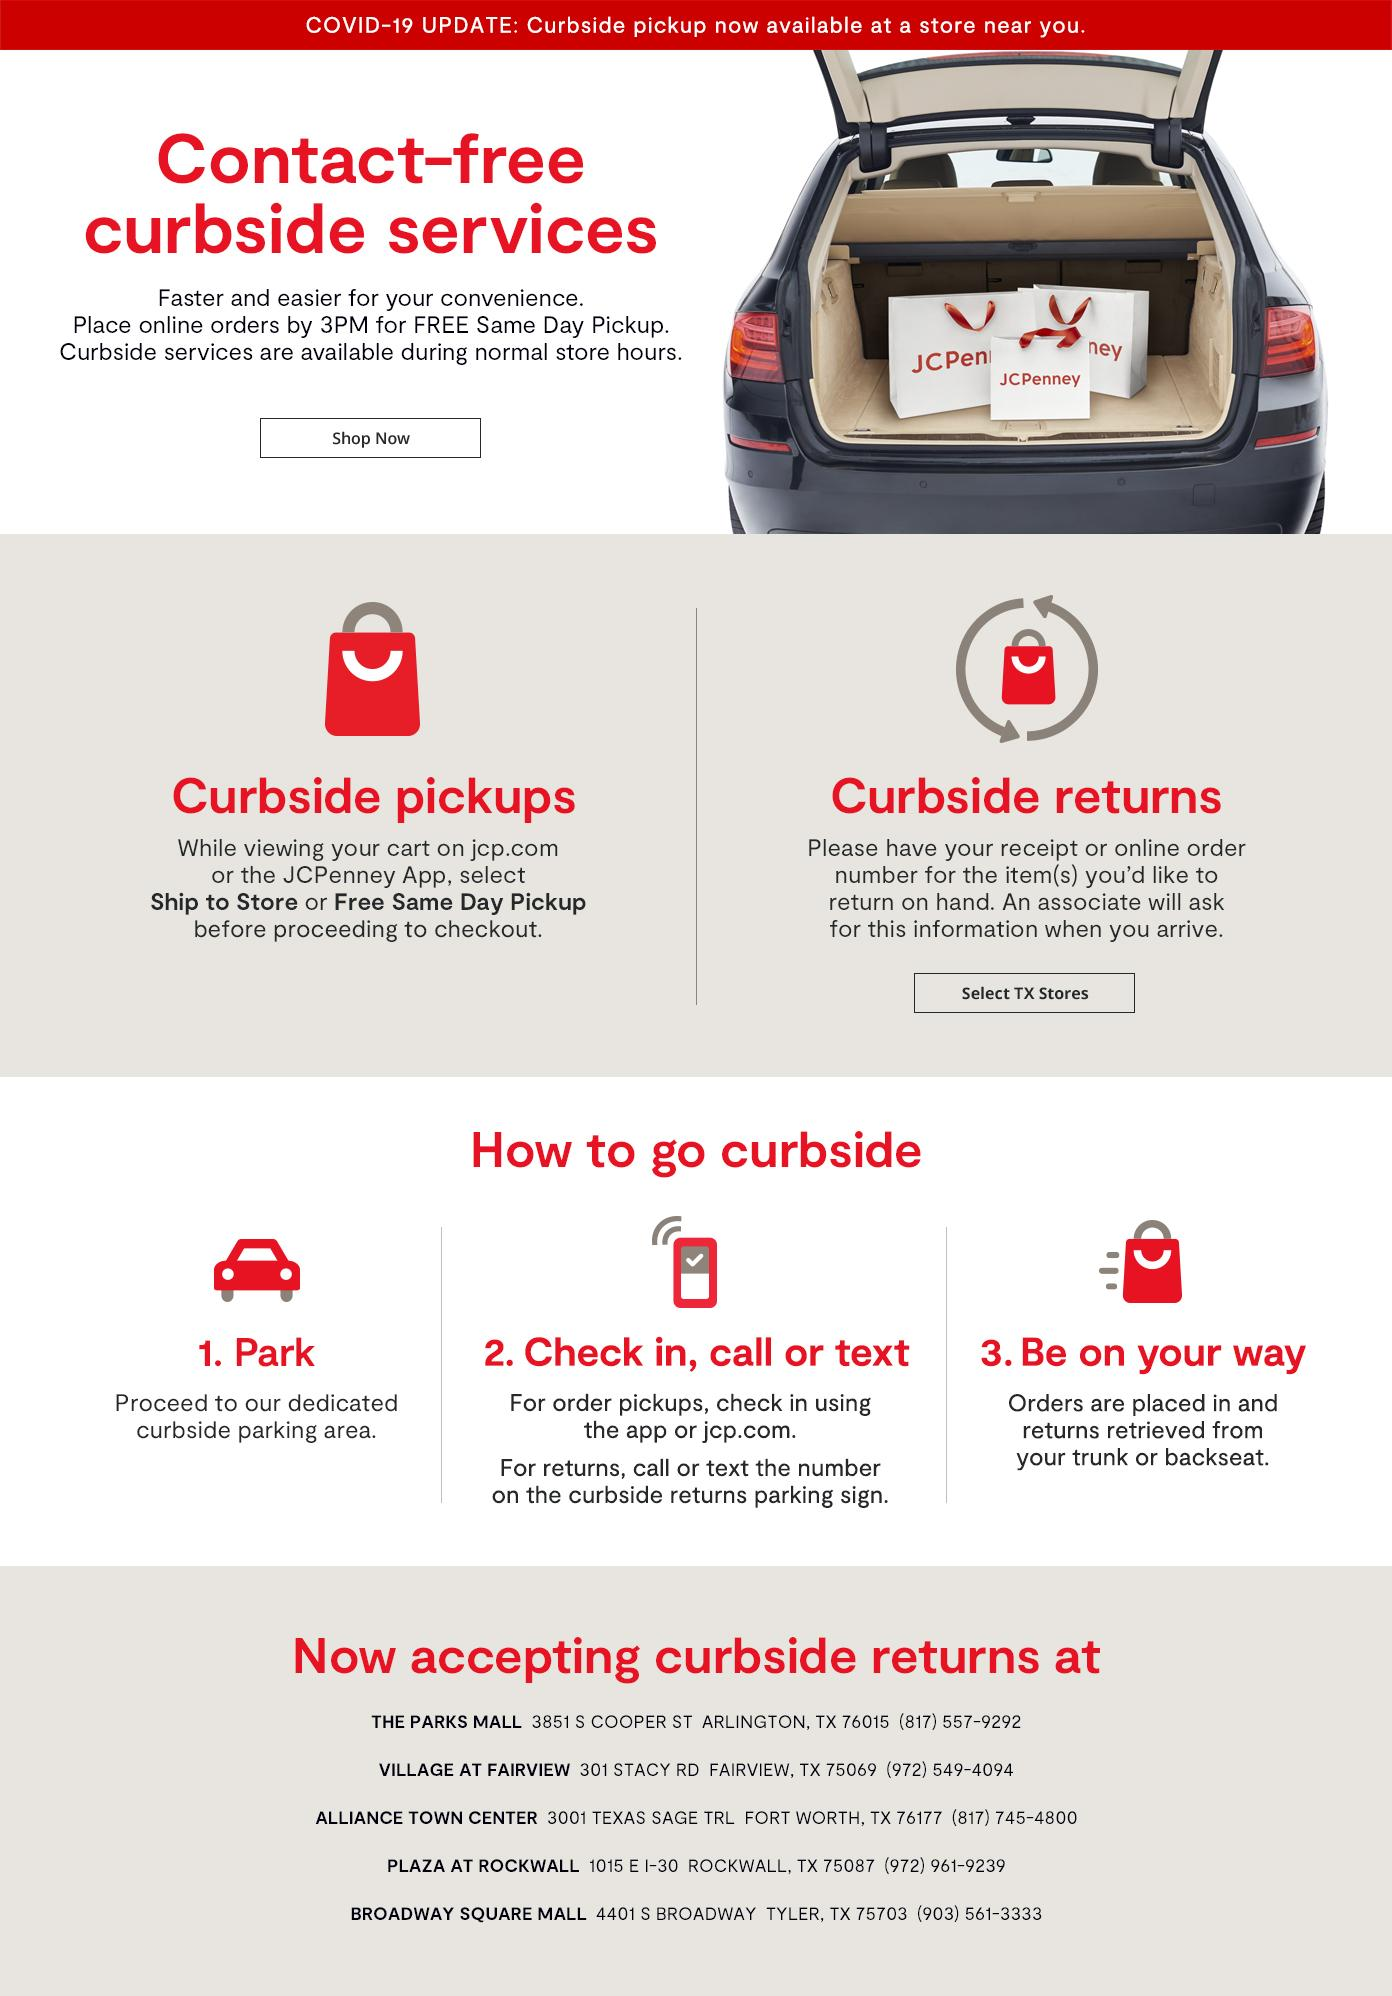 Contact-free curbside services